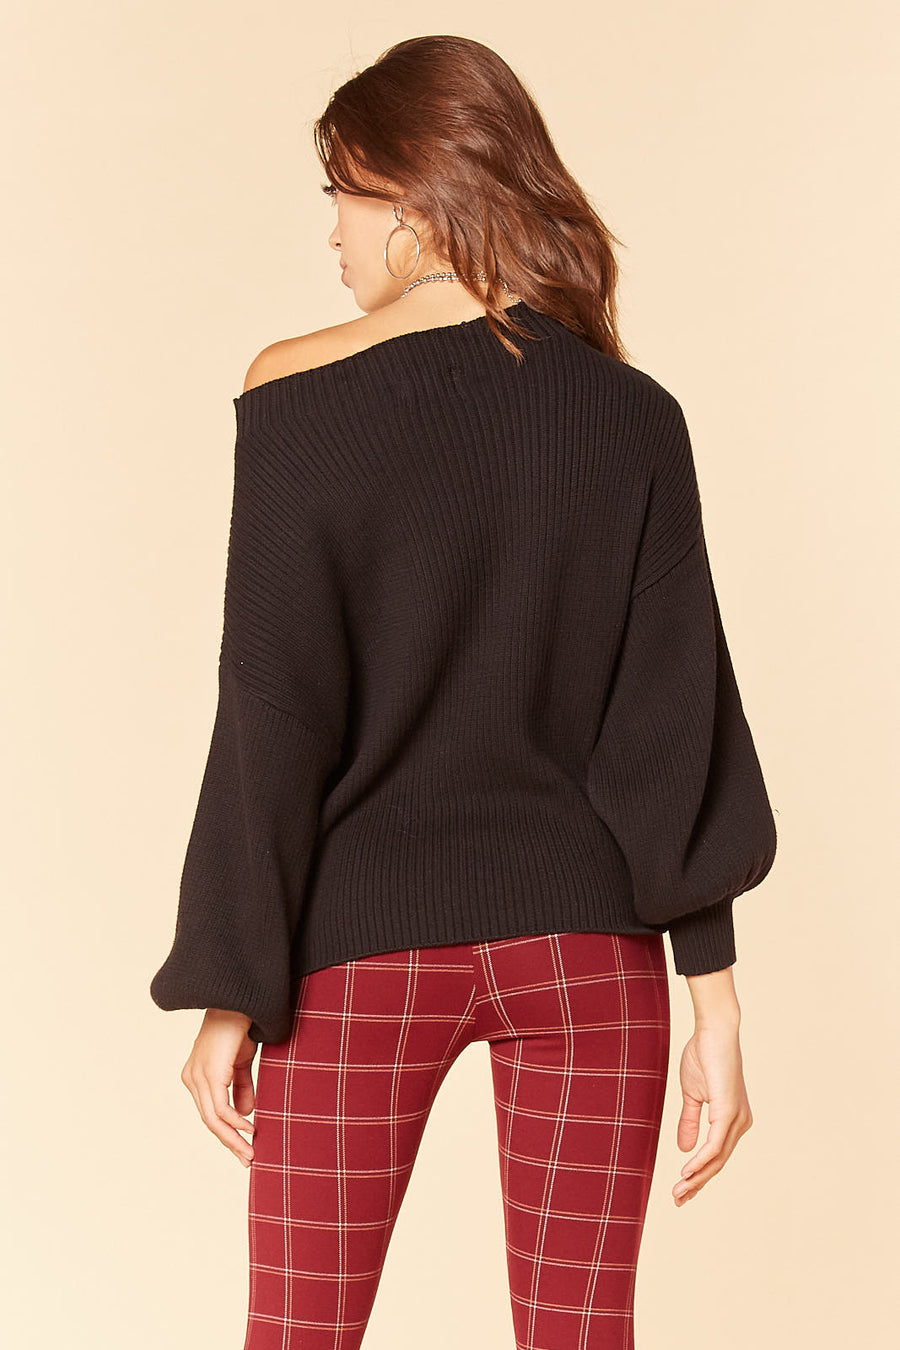 Wishful Thinking Sweater - HoneyBum